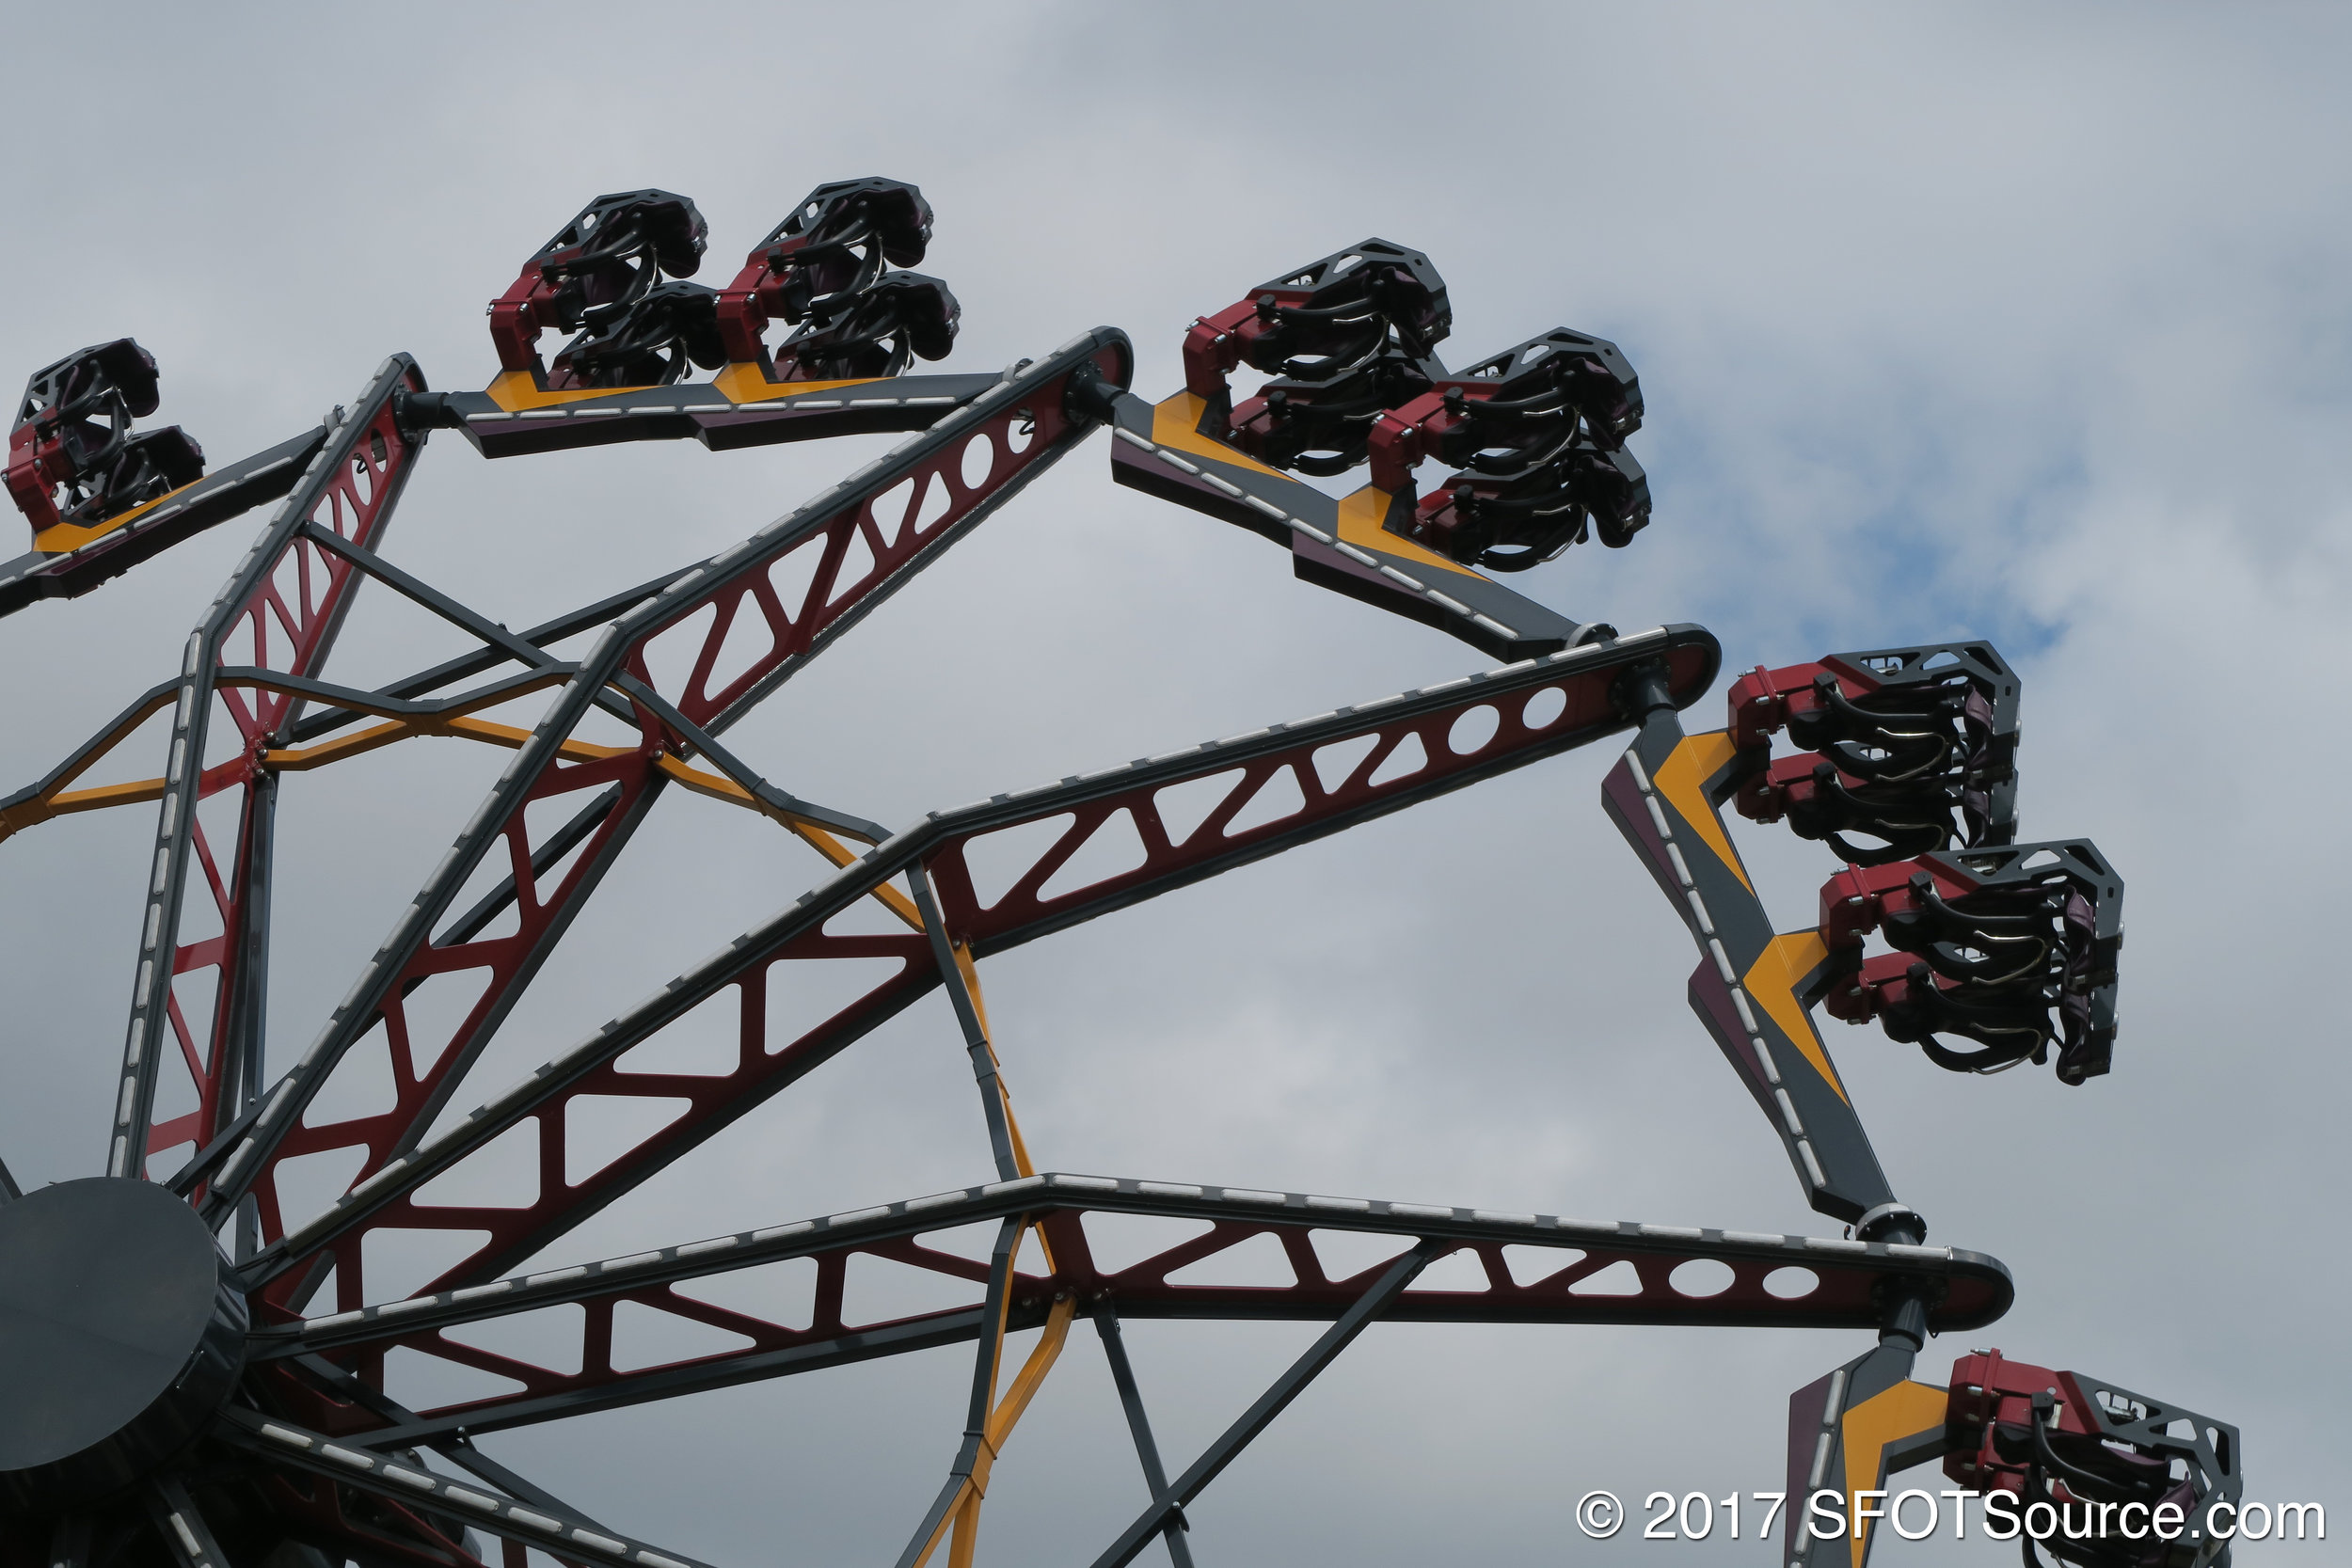 Riders sit two across in each row.